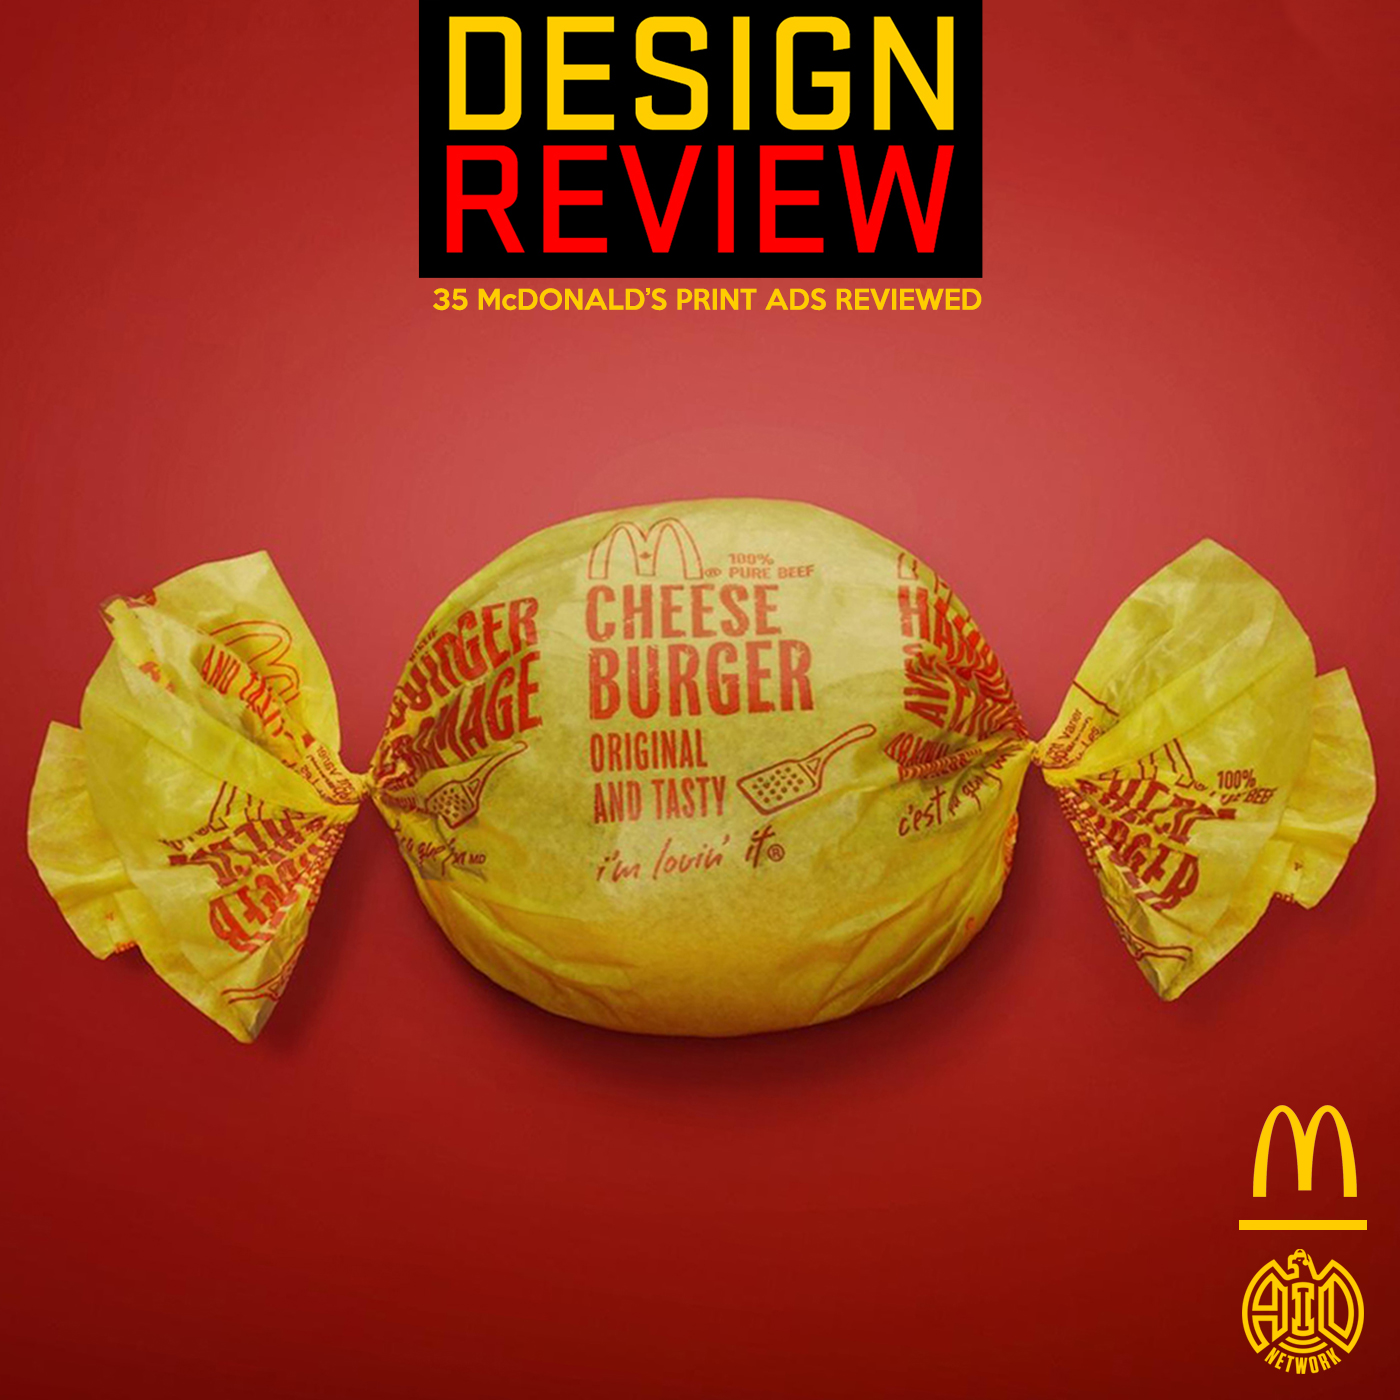 picture relating to Mcdonalds Printable Job Application named McDonalds Layout Evaluate - 35 Print Commercials Analyzed Talked over